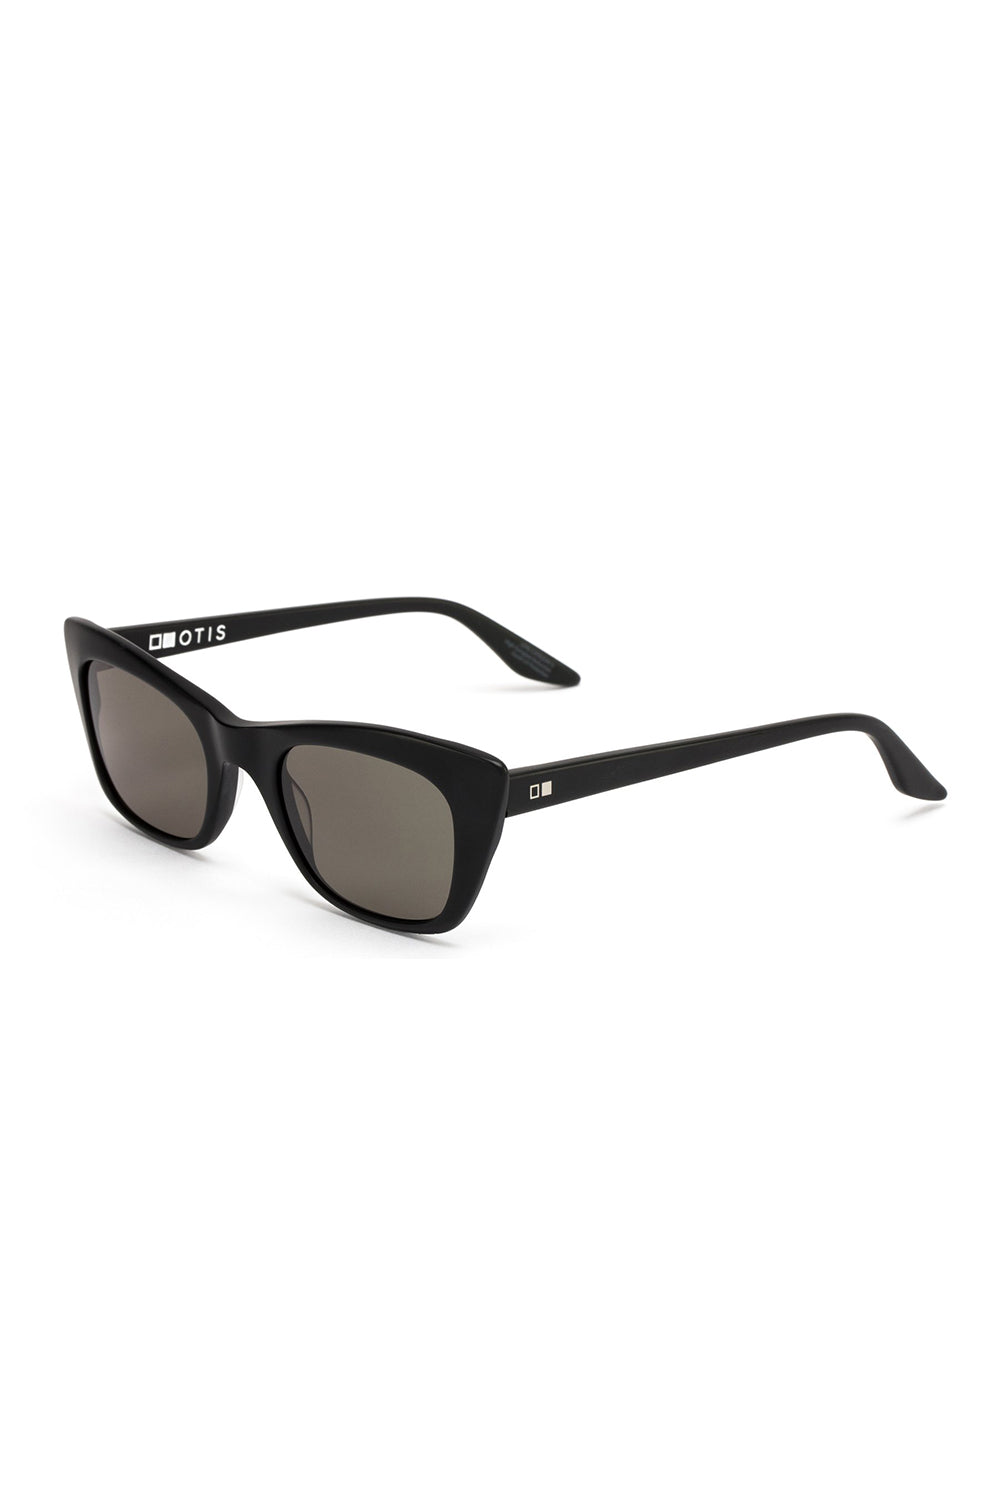 OTIS Suki - Matte Black/Grey